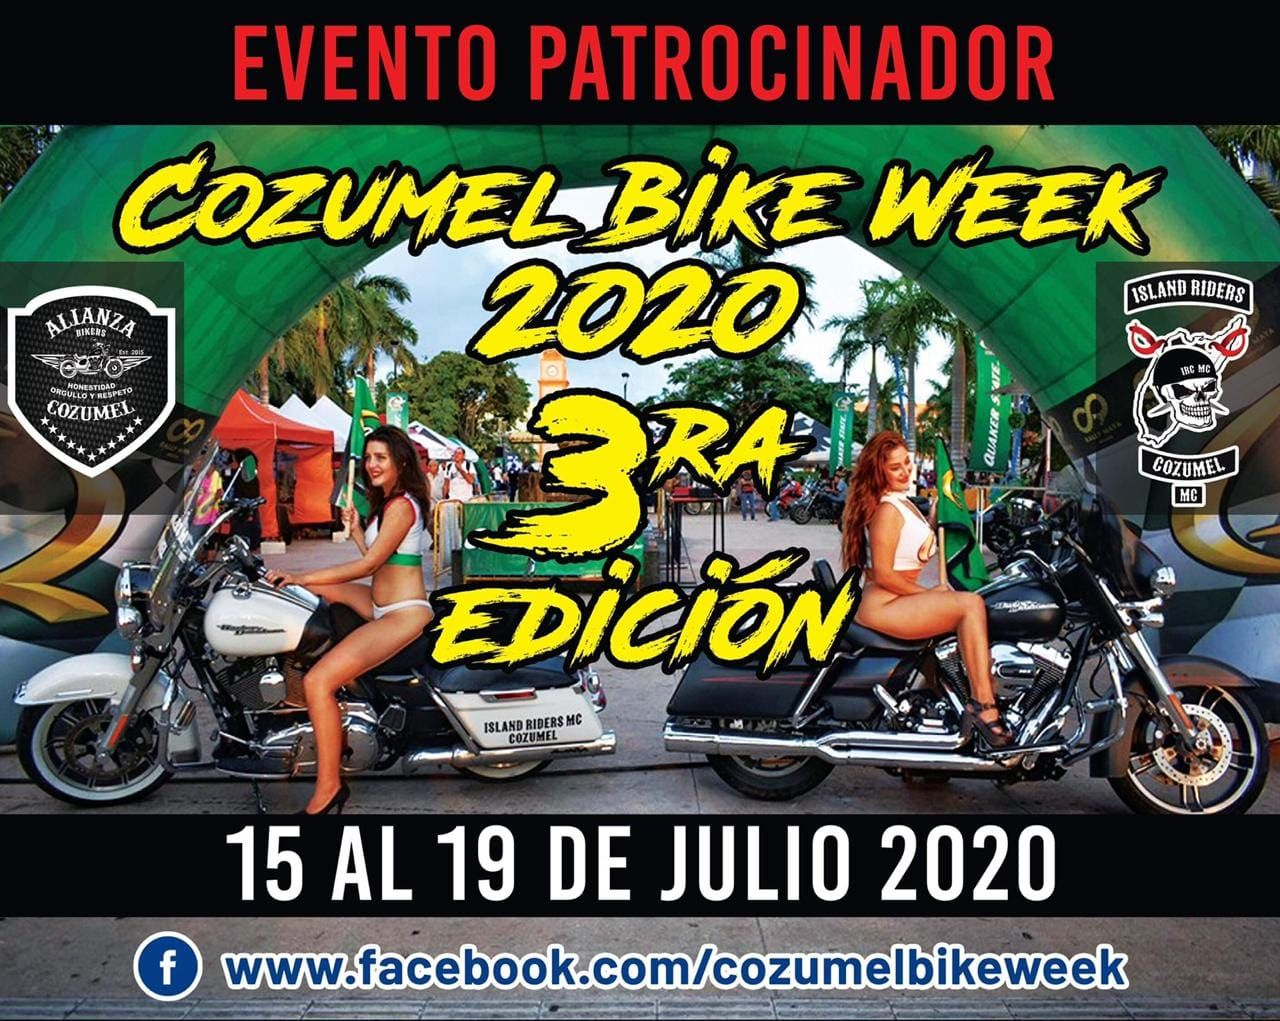 Cozumel Bike Week 2020